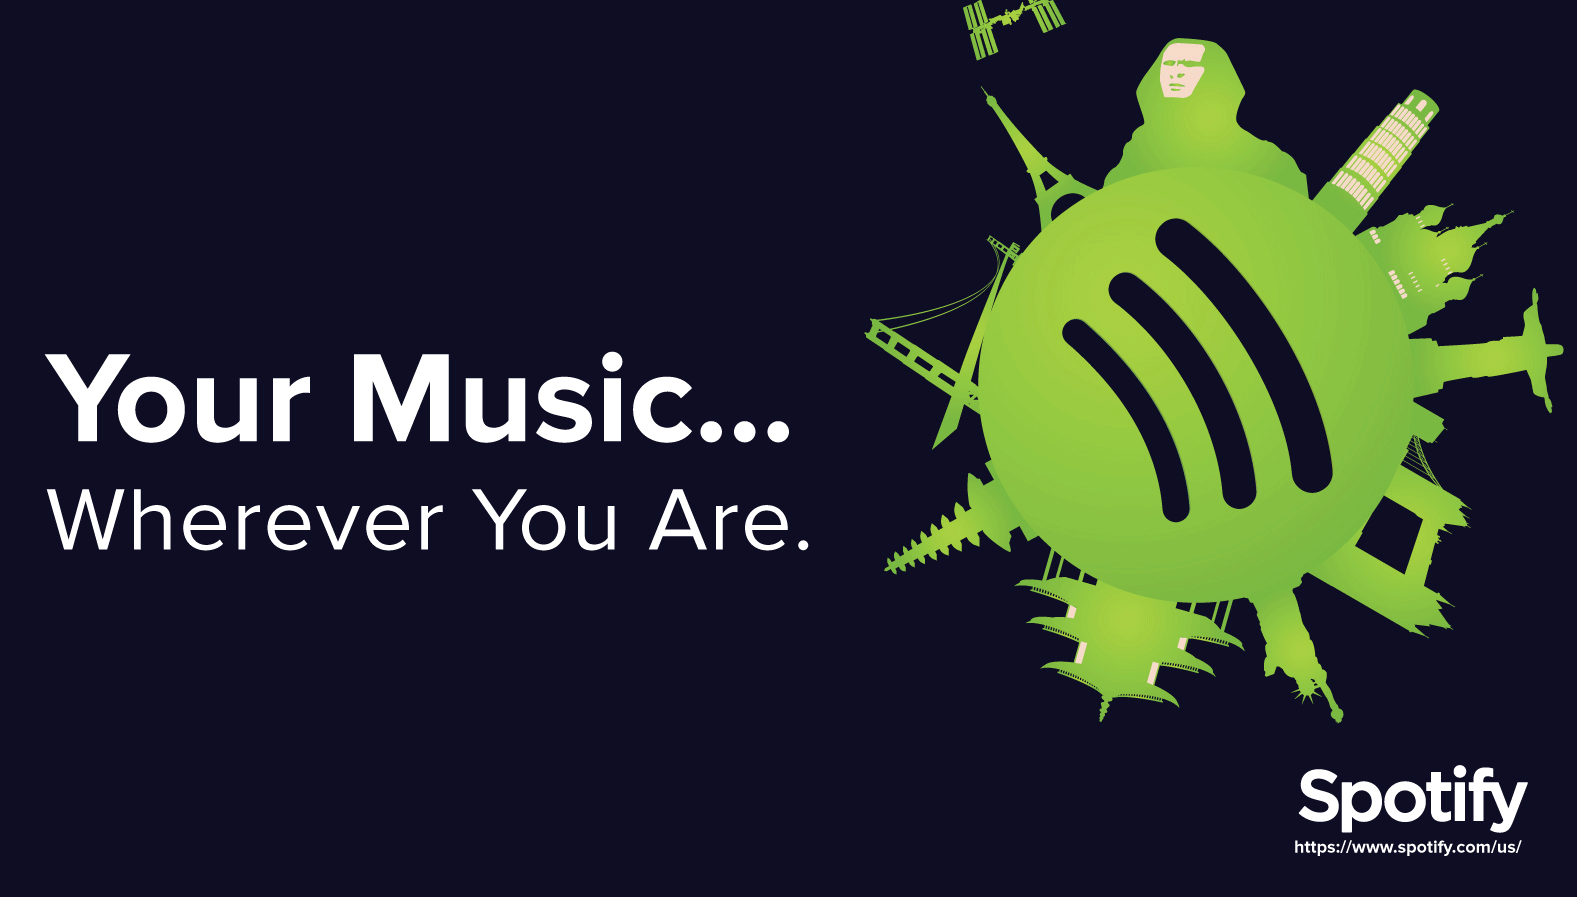 7 spotify simple value proposition graphic banner example